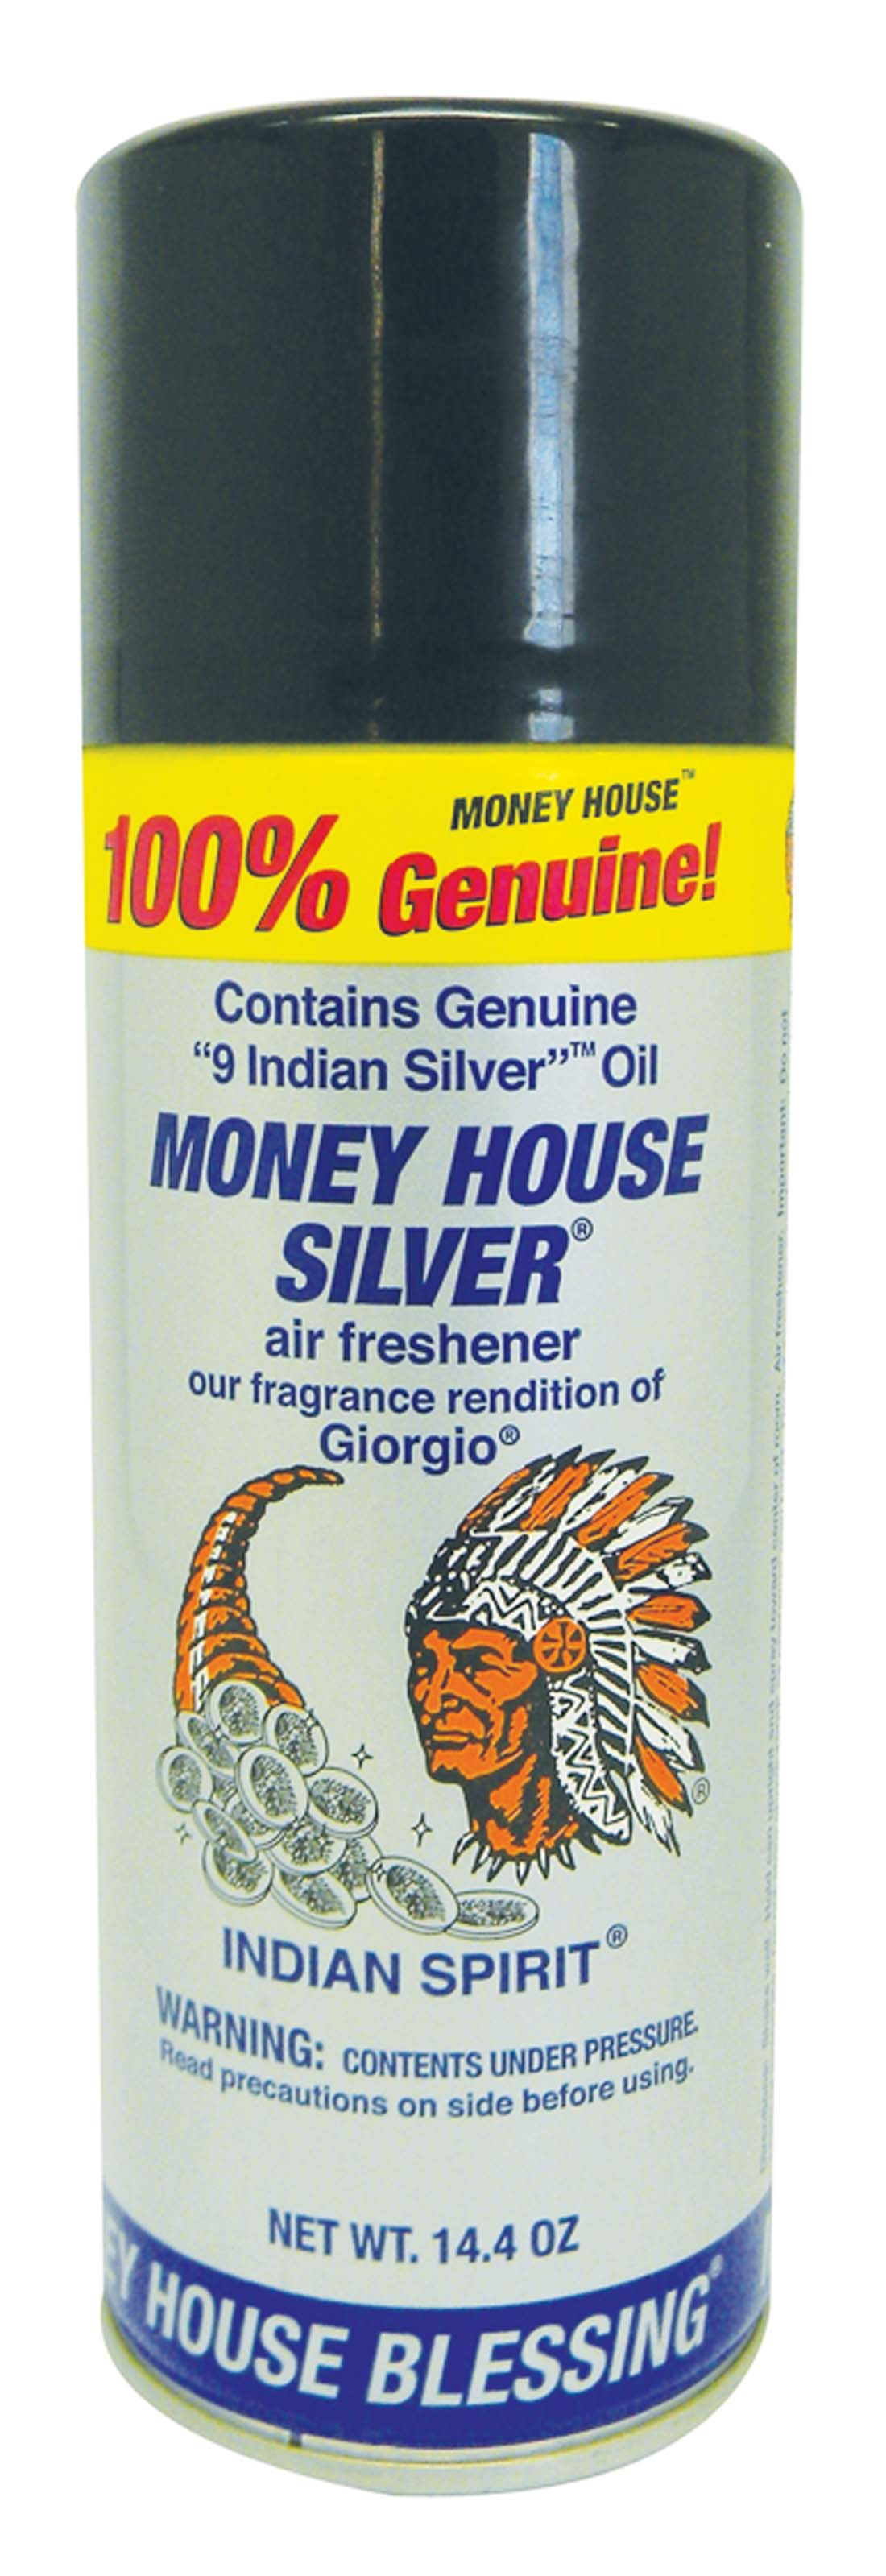 View MONEY HOUSE AIR FRESHENER 14.4 OZ SILVER